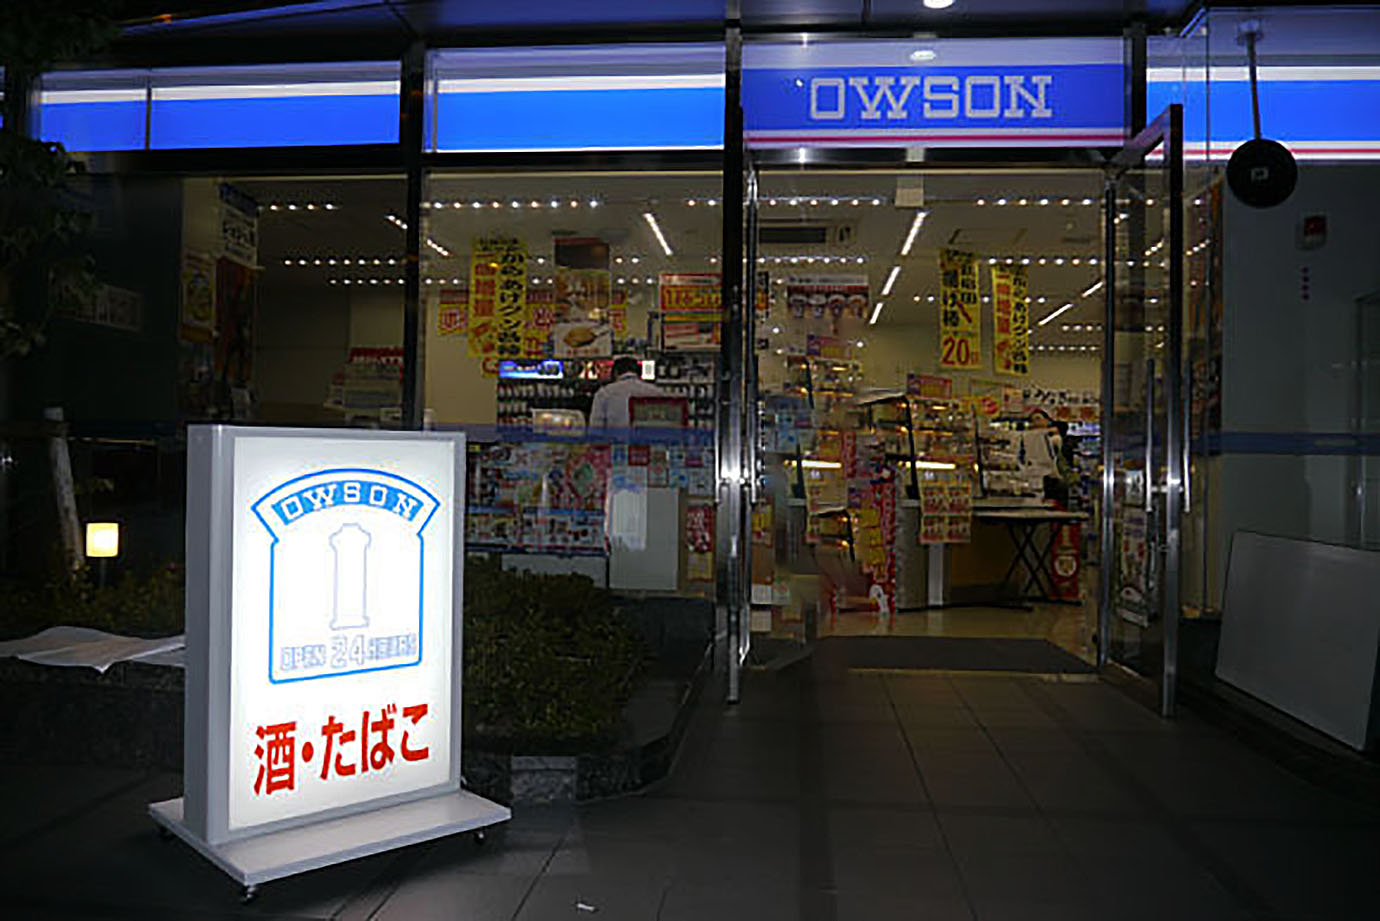 lawson